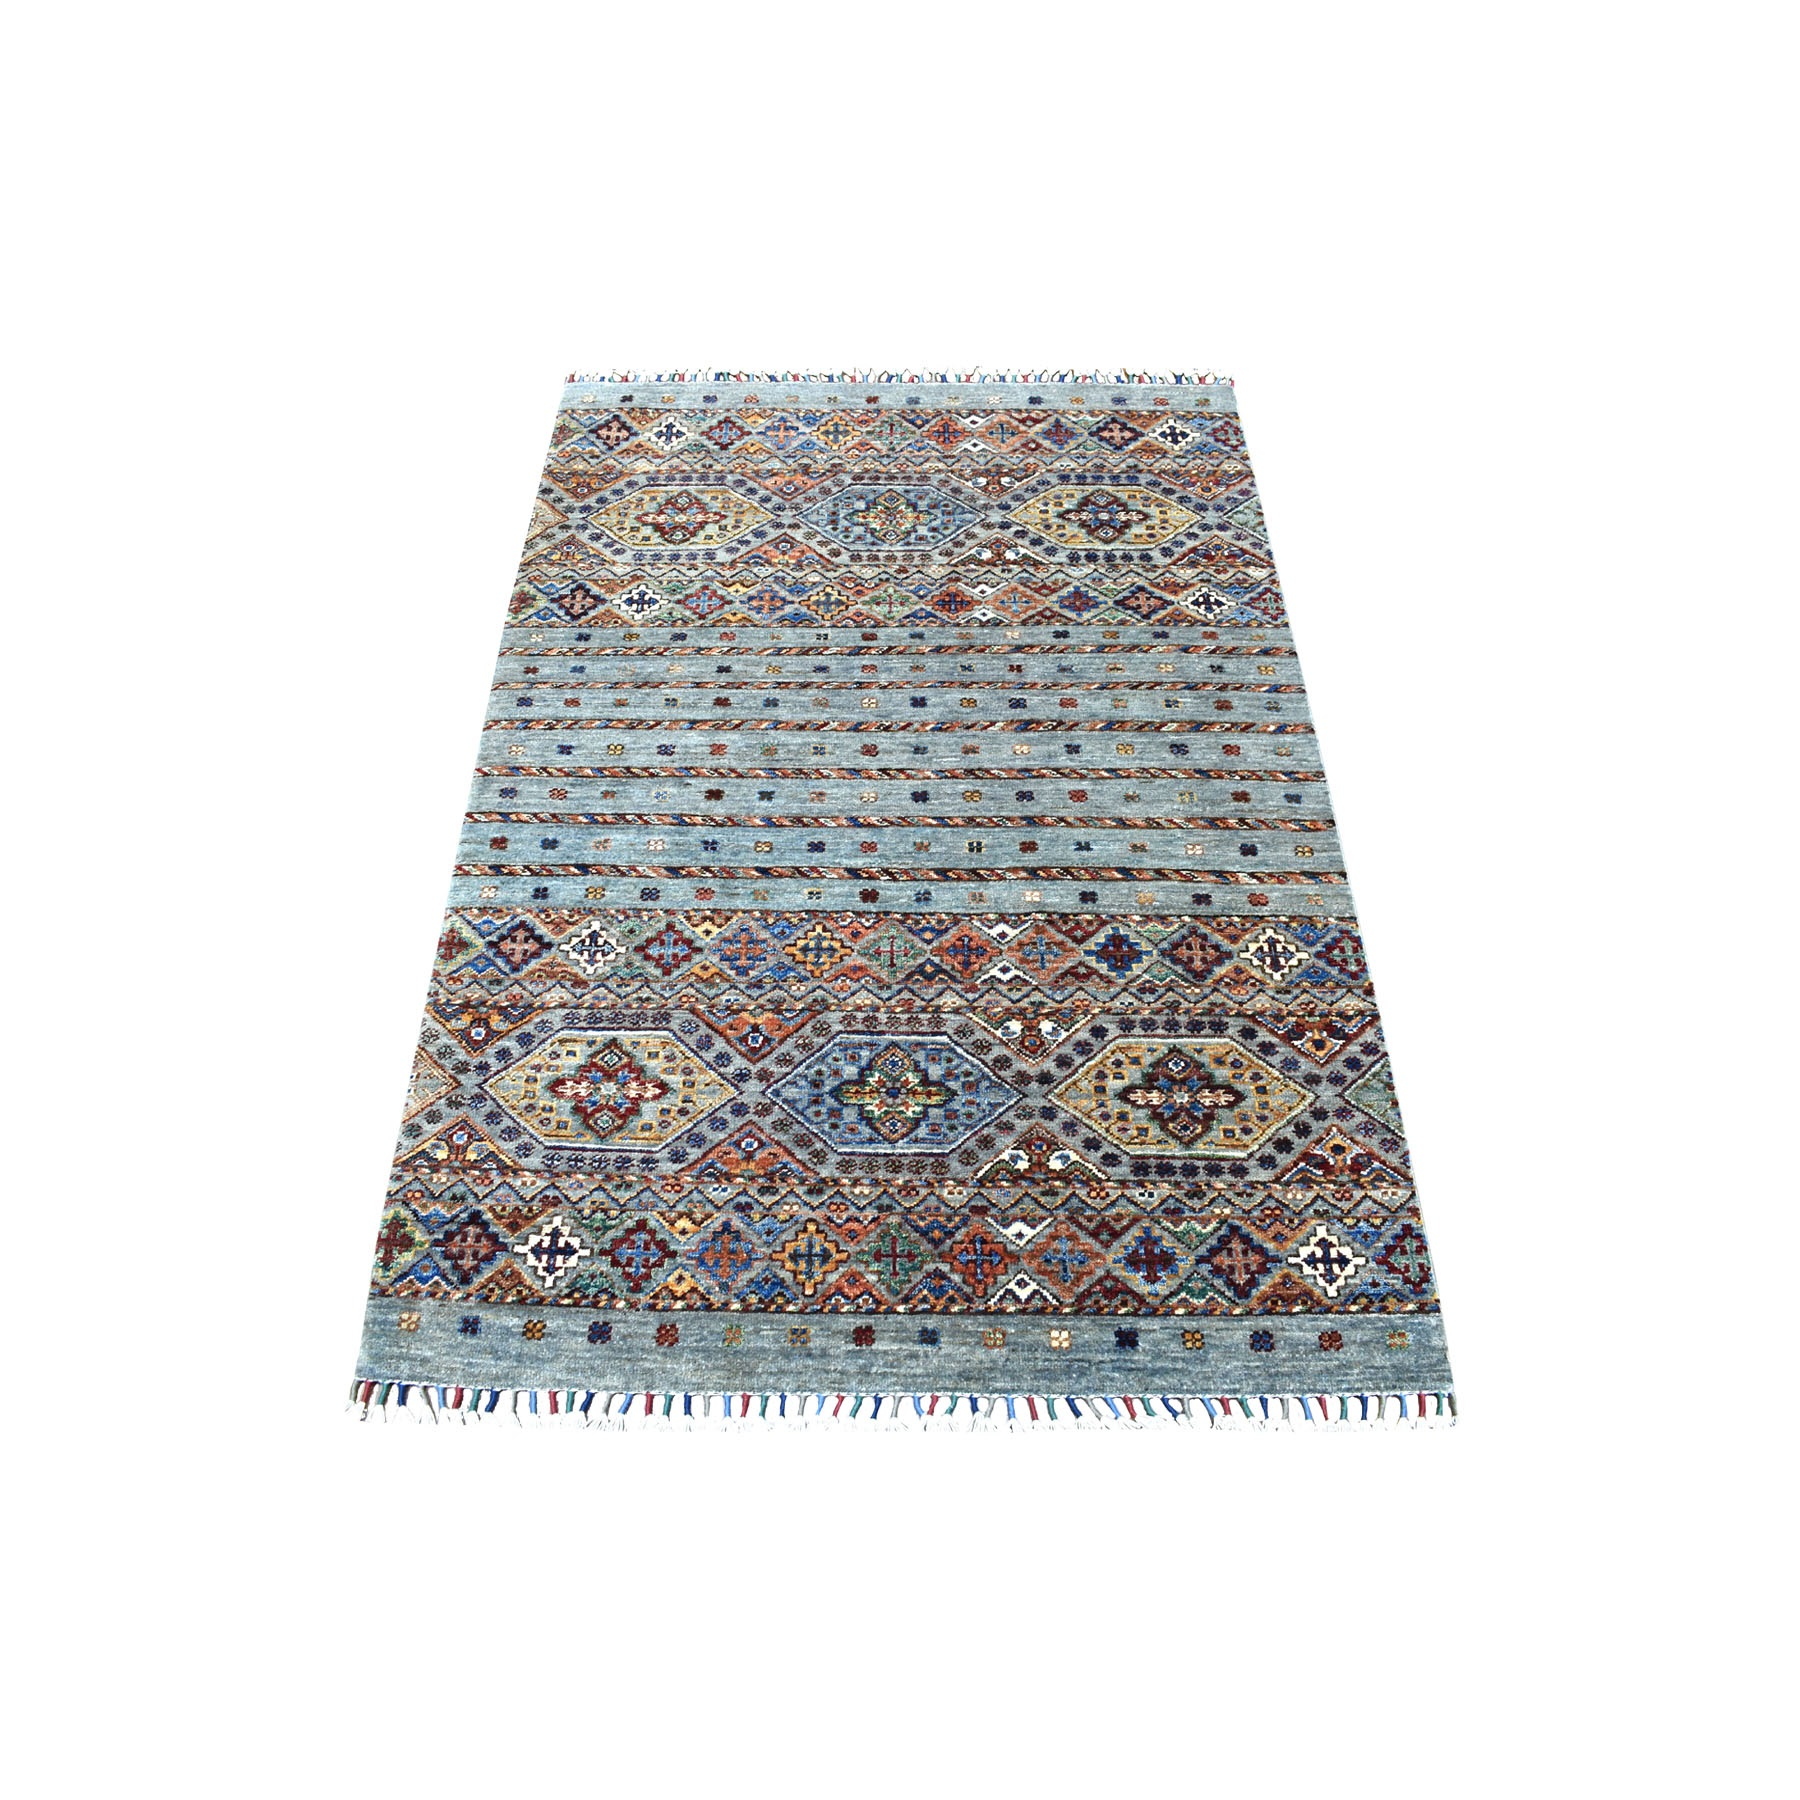 "3'4""x5' Gray Super Kazak Khorjin Design With Colorful Tassles Hand Knotted Vibrant Wool Oriental Rug"